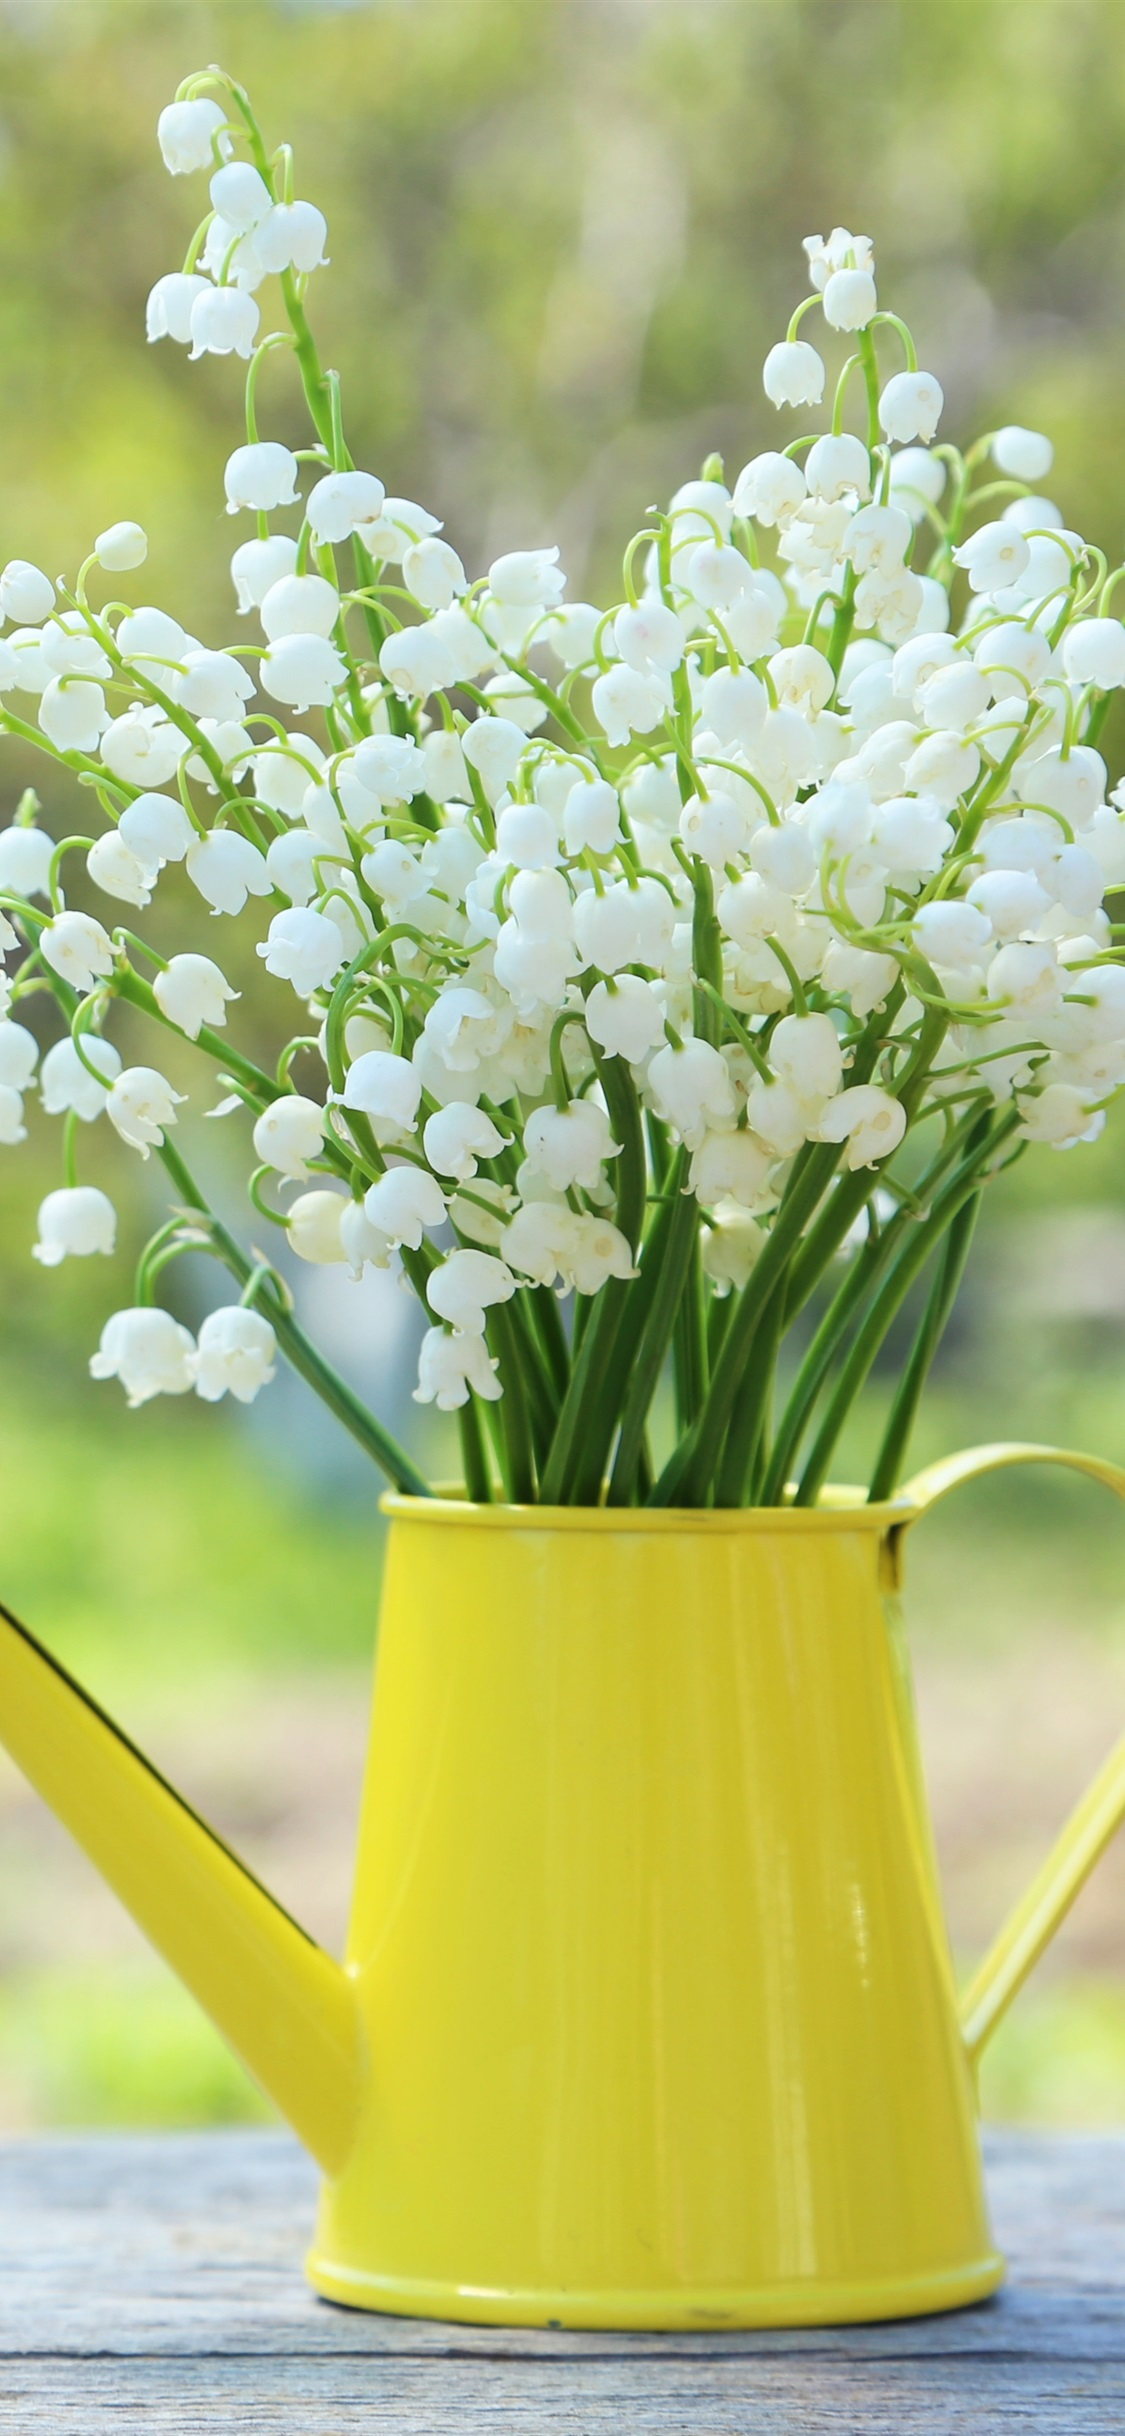 Wallpaper Lilies Of The Valley Spring Flowers Kettle 3840x2160